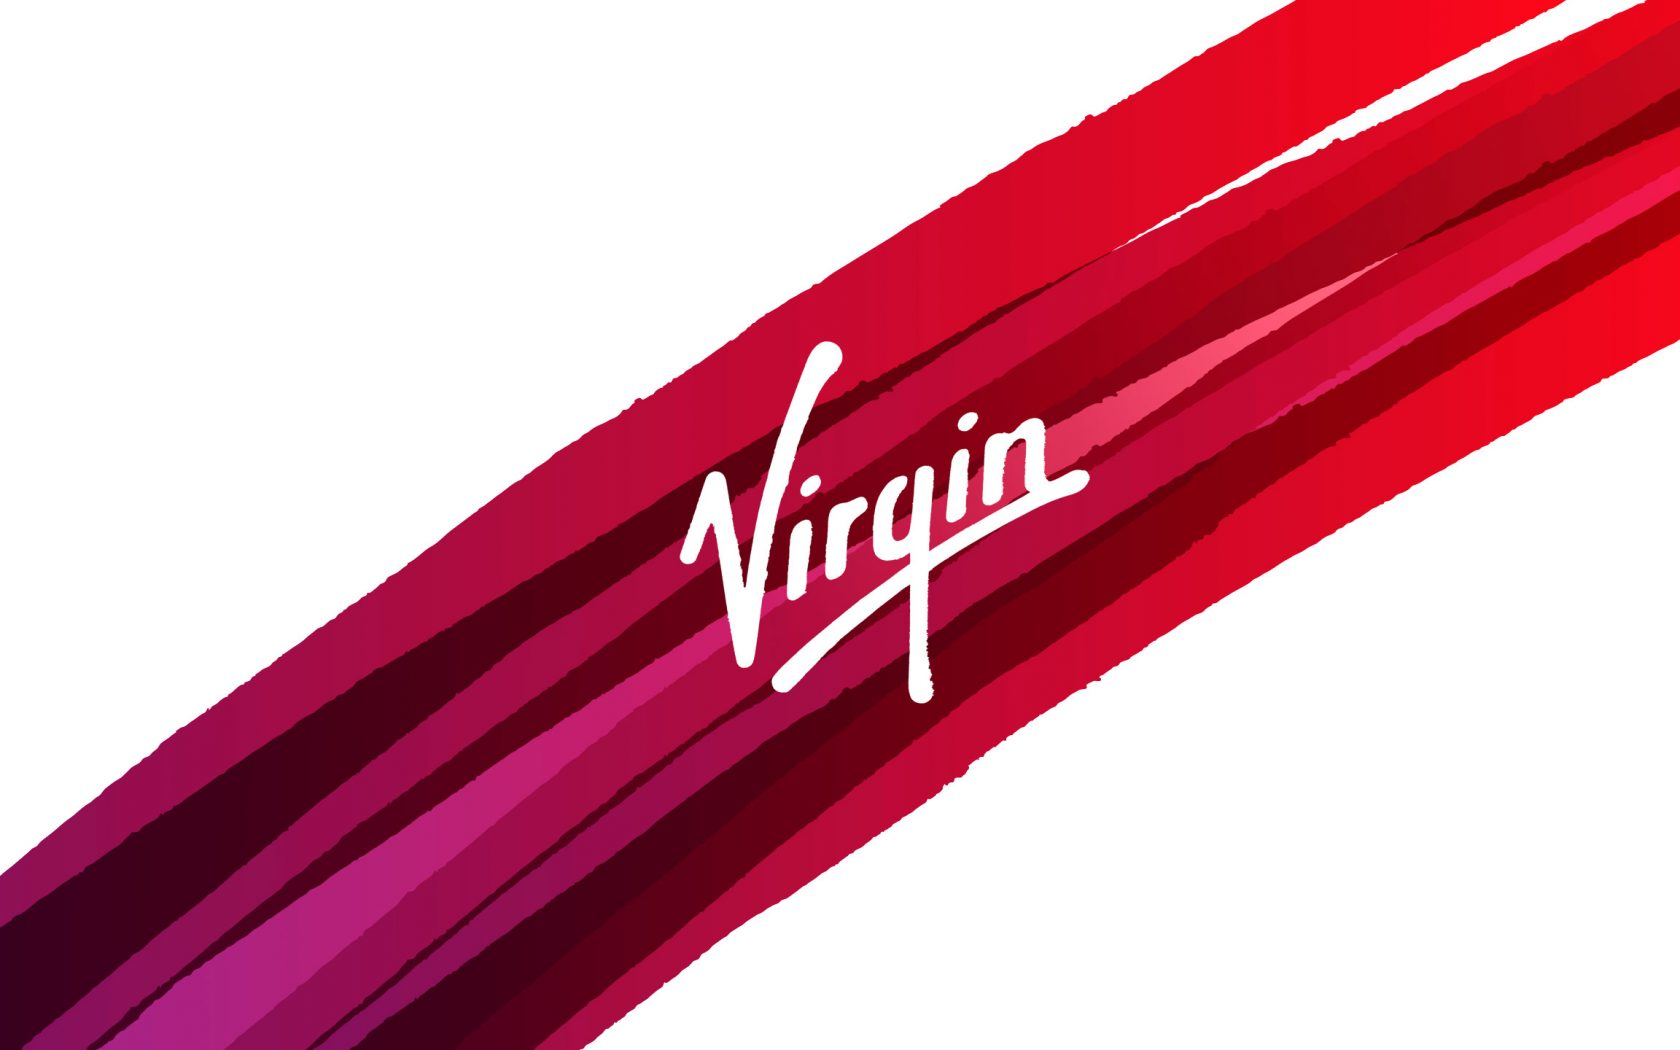 Cool Virgin Company Logo Wallpaper PaperPull 1680x1050